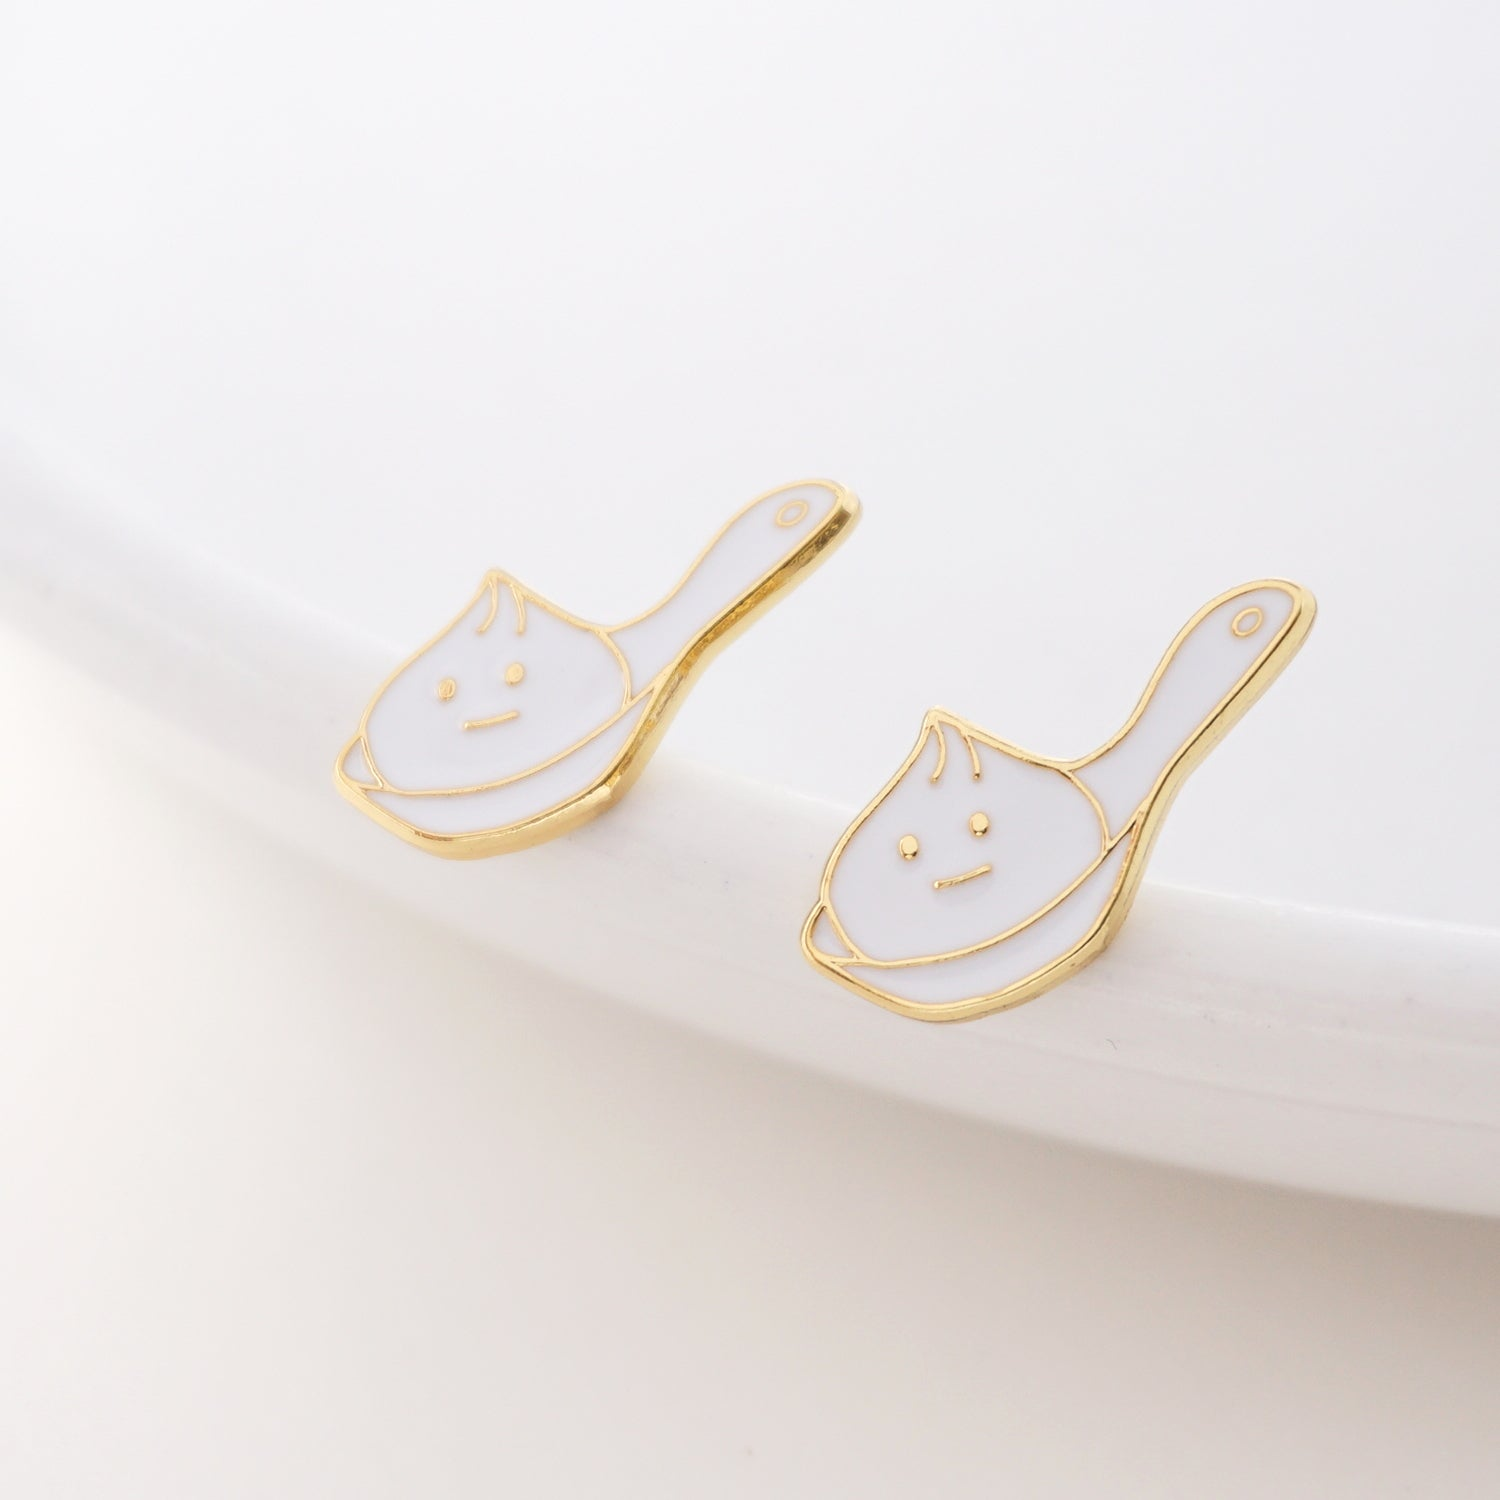 Spoon XLB Enamel Stud Earrings